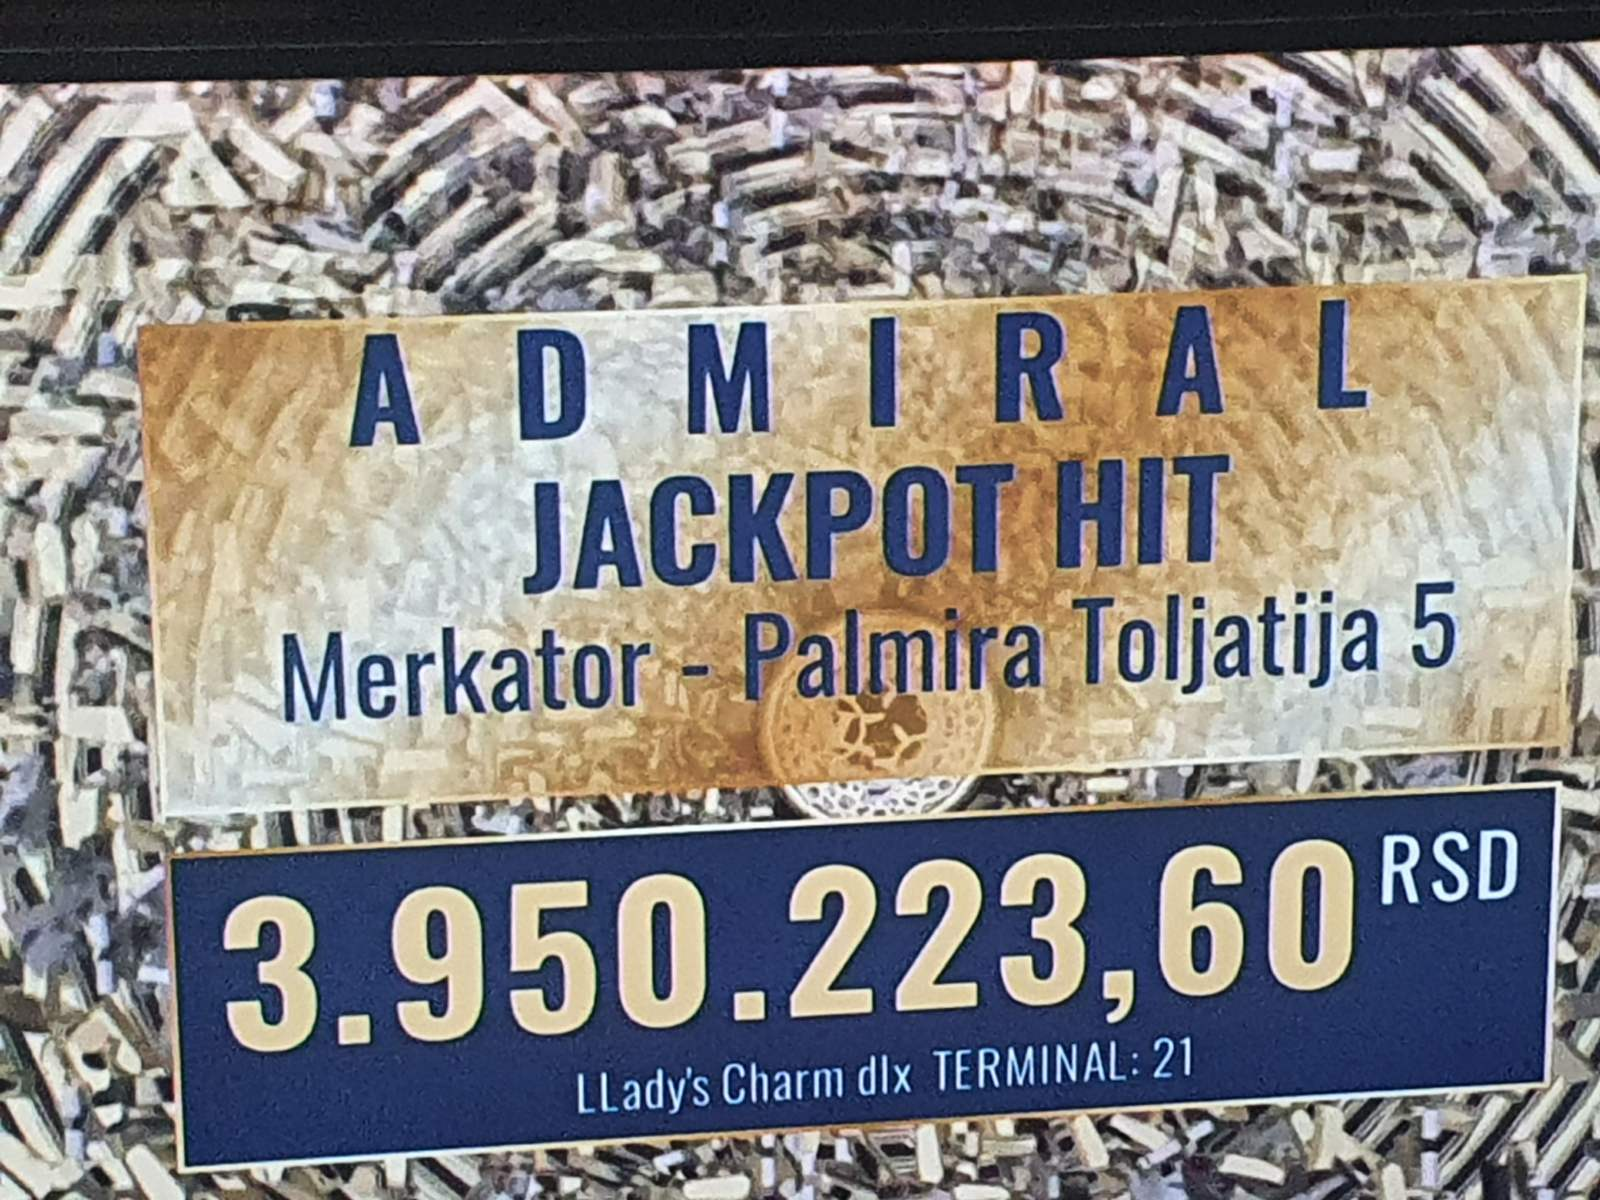 Admiral jackpot in new edition has been won